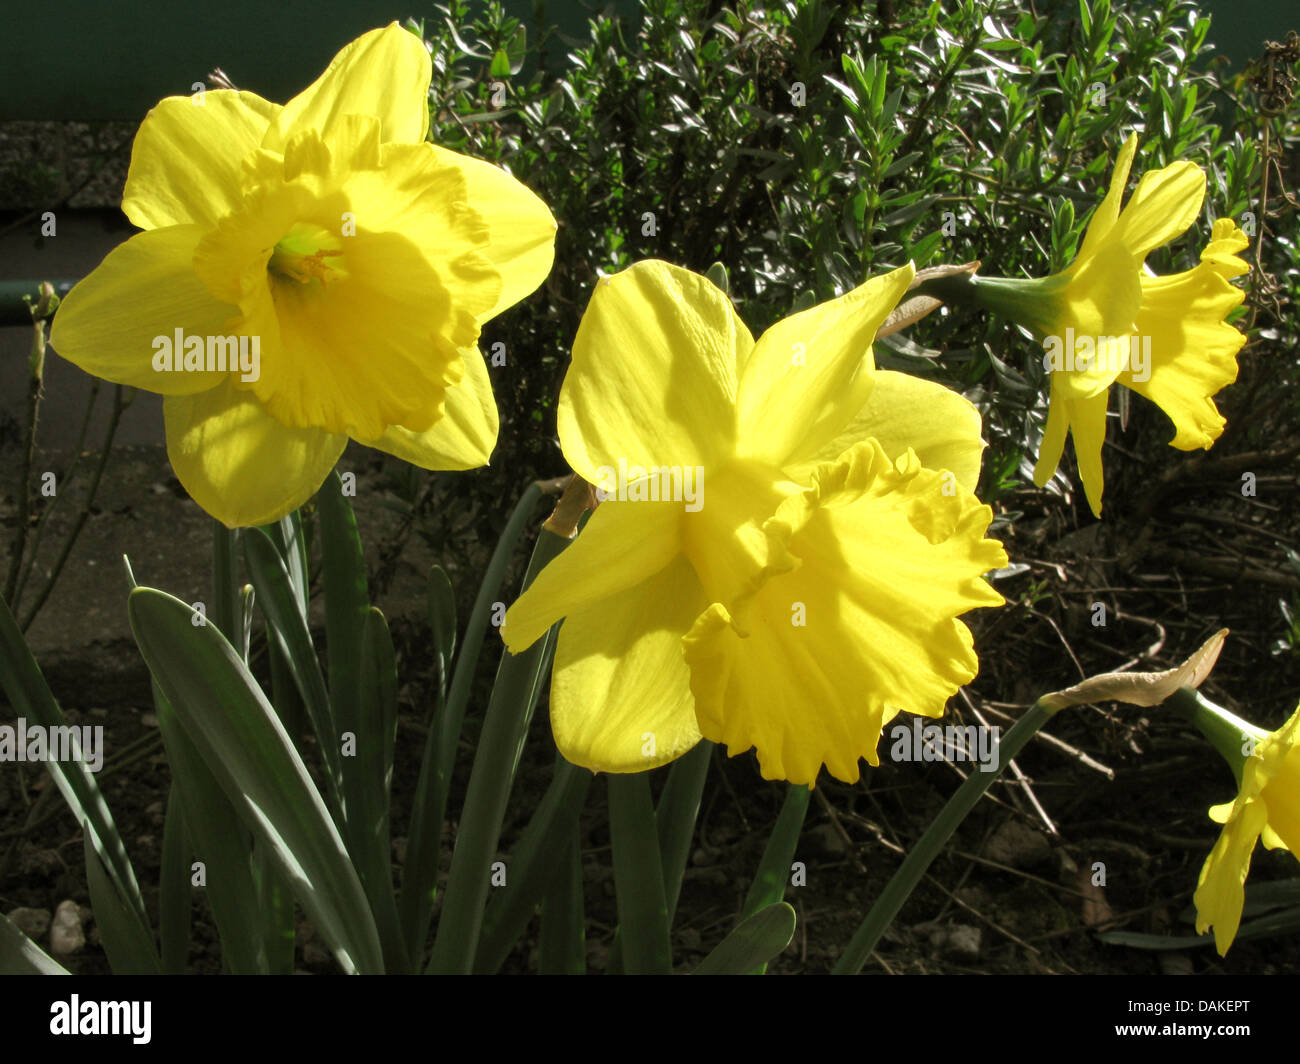 daffodil (Narcissus 'Gigantic Star', Narcissus Gigantic Star), cultivar Gigantic star, flowers in backlight - Stock Image